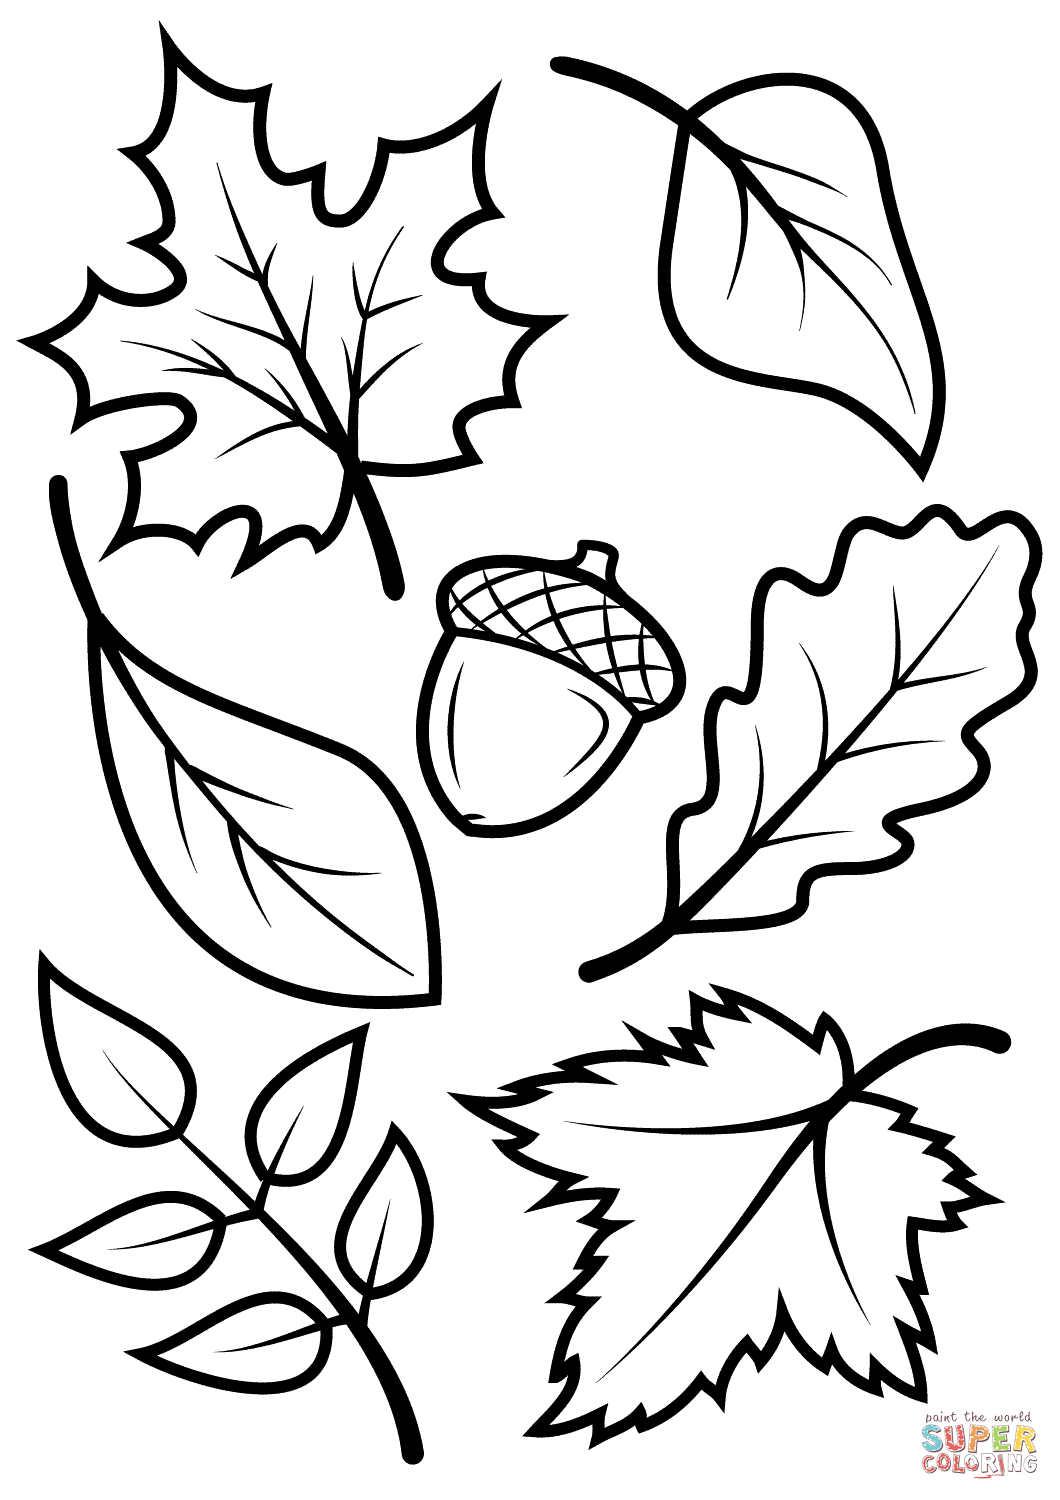 Fall Leaves And Acorn Coloring Page | Free Printable Coloring Pages - Free Printable Leaves